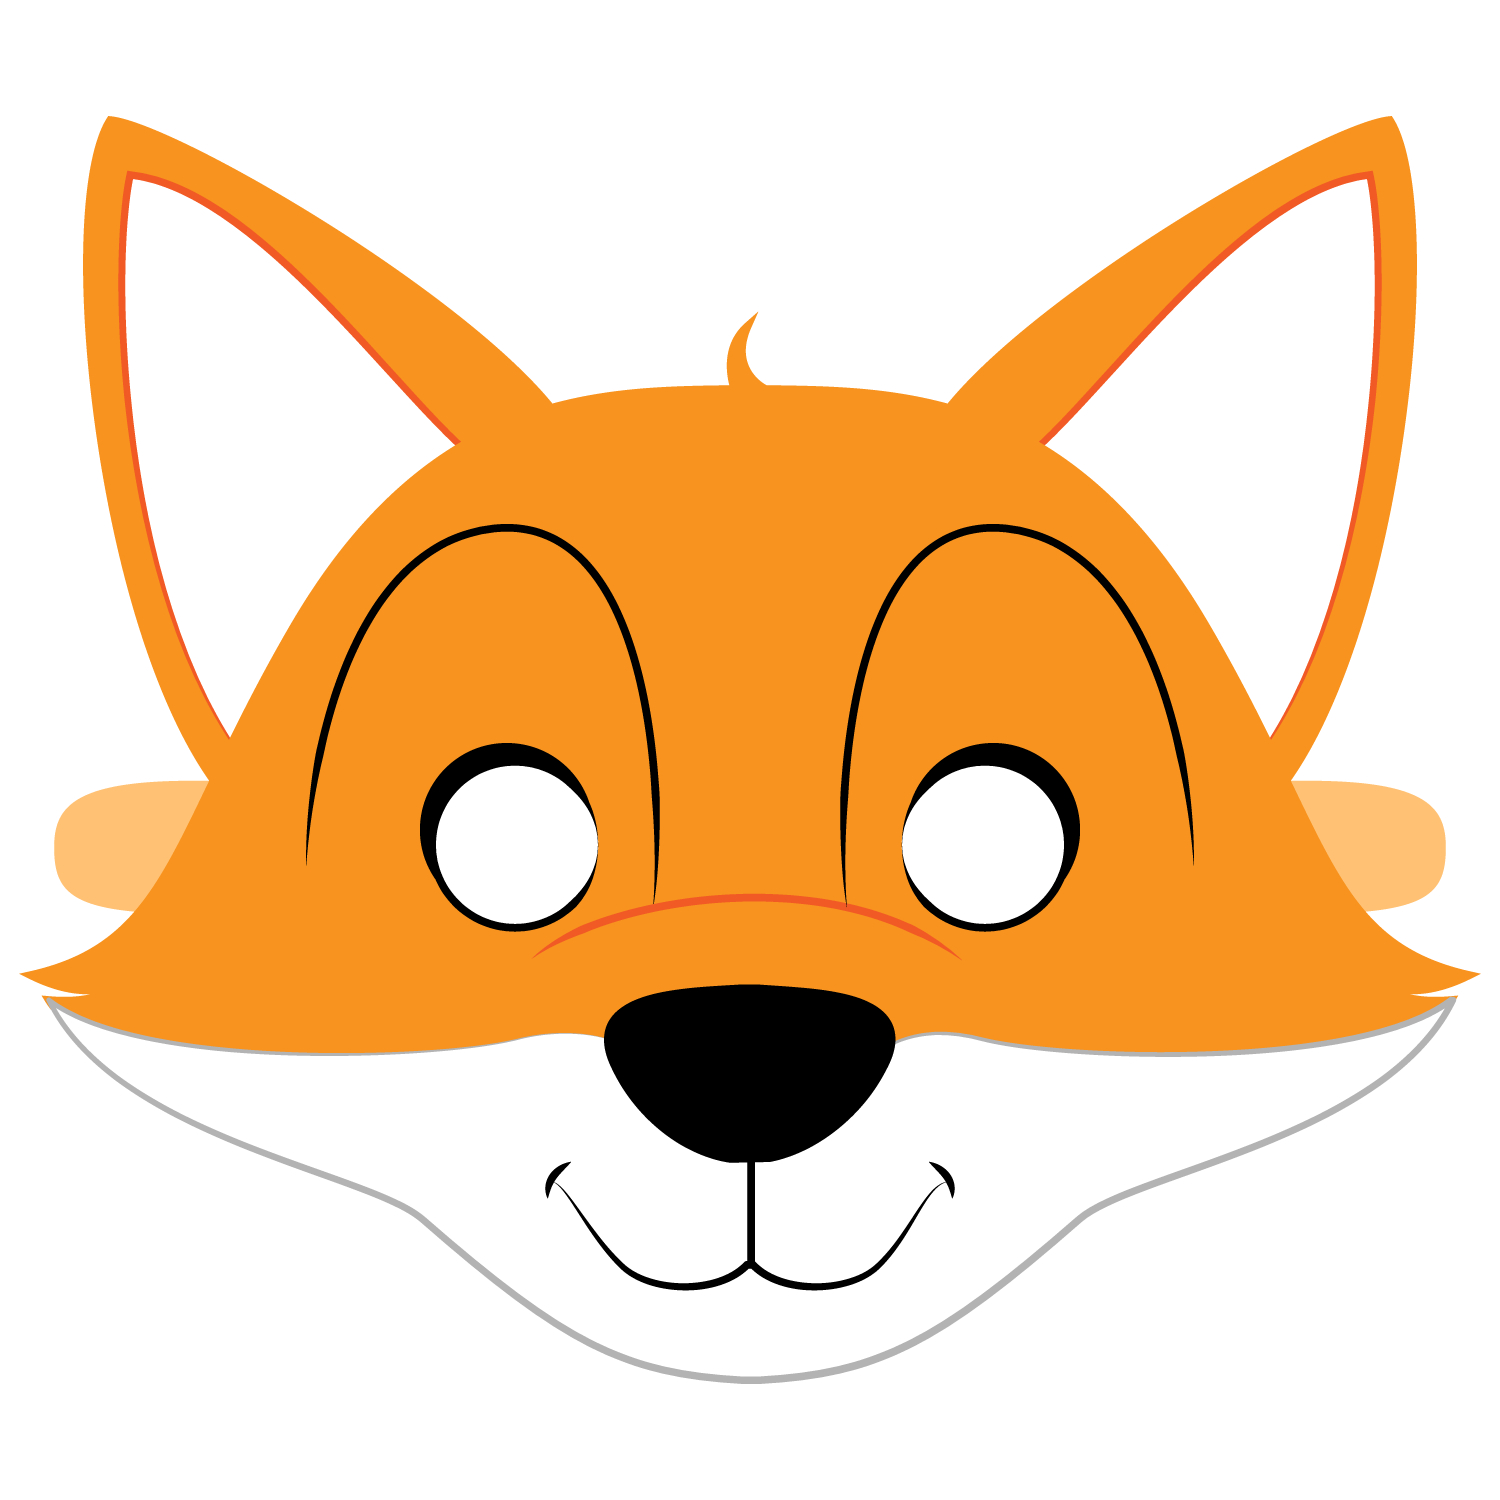 Fox Mask Template | Free Printable Papercraft Templates - Free Printable Fox Mask Template